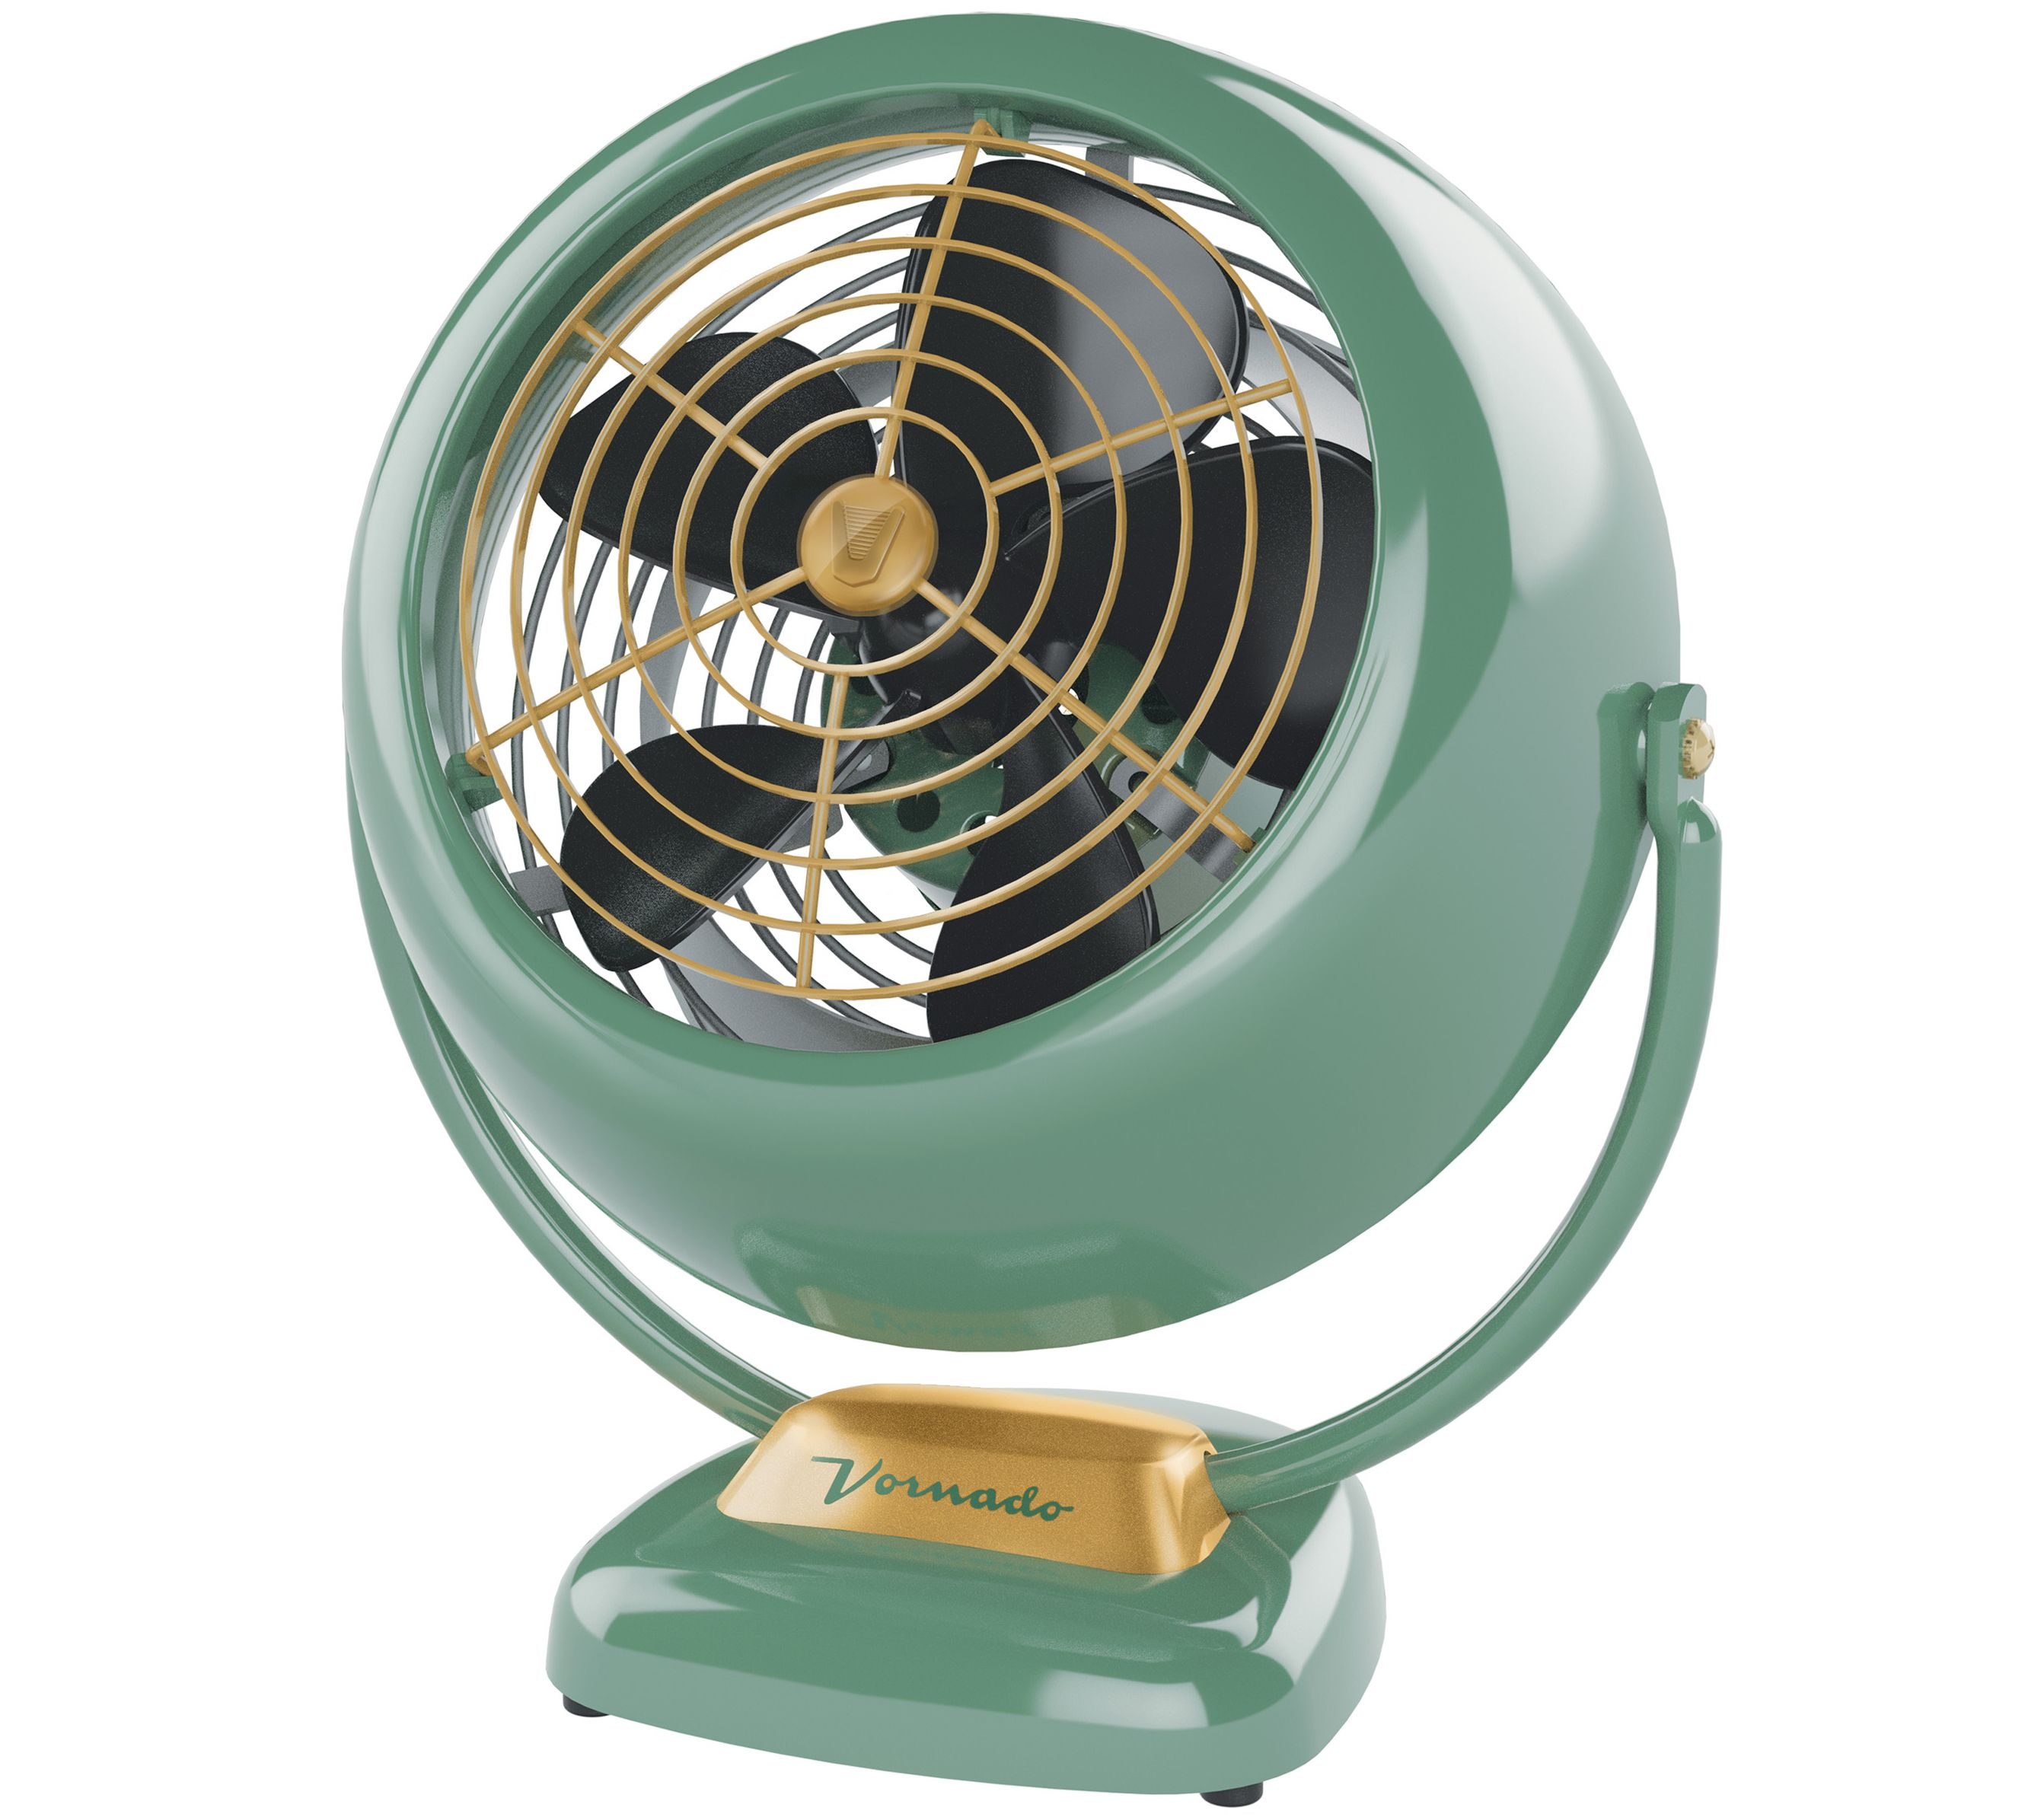 Vornado Fan Vornado Vfan Vintage Style Air Circulator Qvc